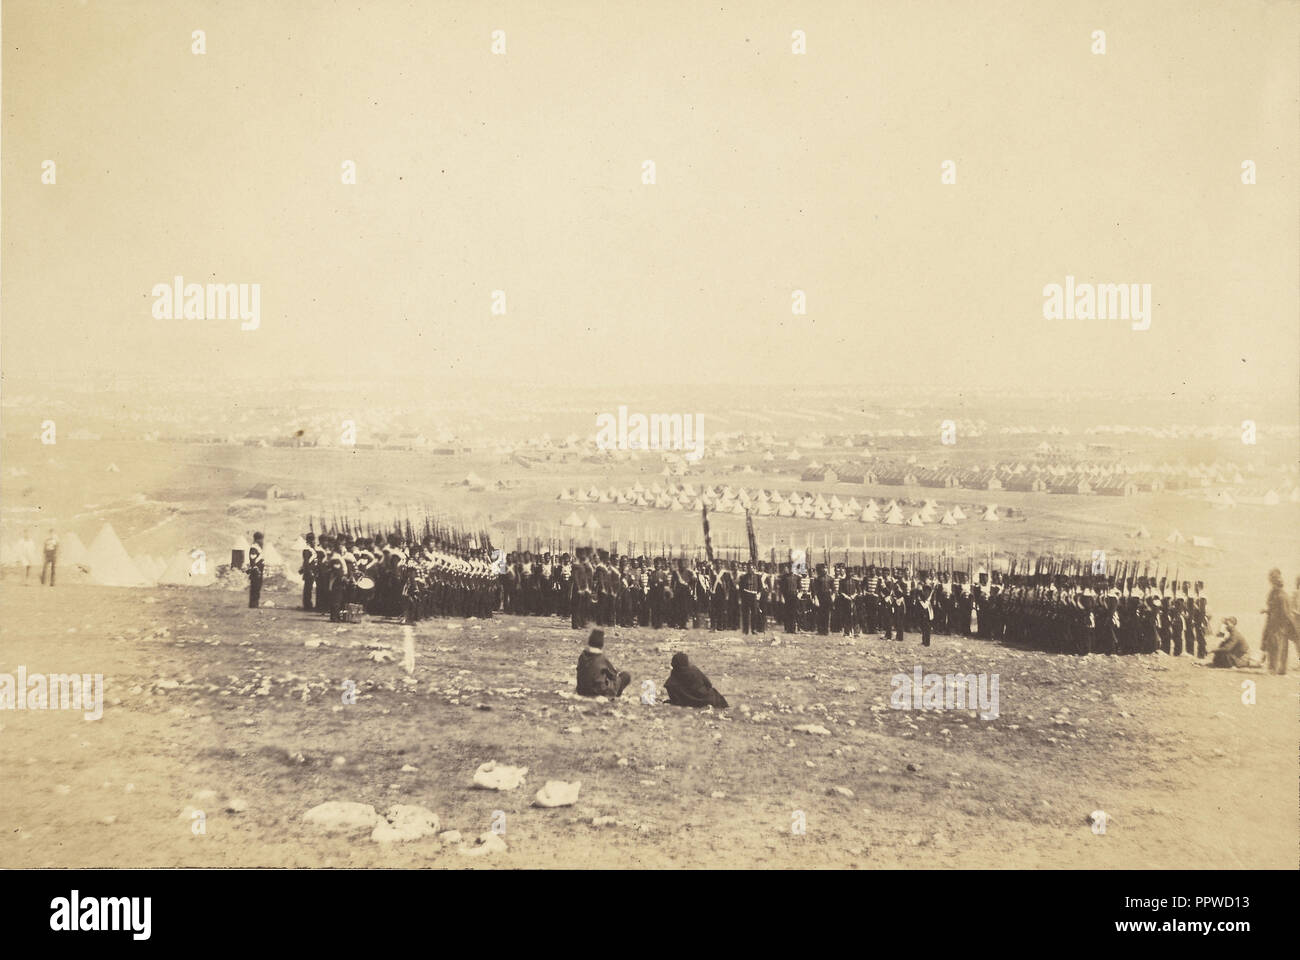 Colonel Shadforth & the 57th Regiment; Roger Fenton, English, 1819 - 1869, 1855; published March 25, 1856; Salted paper print - Stock Image